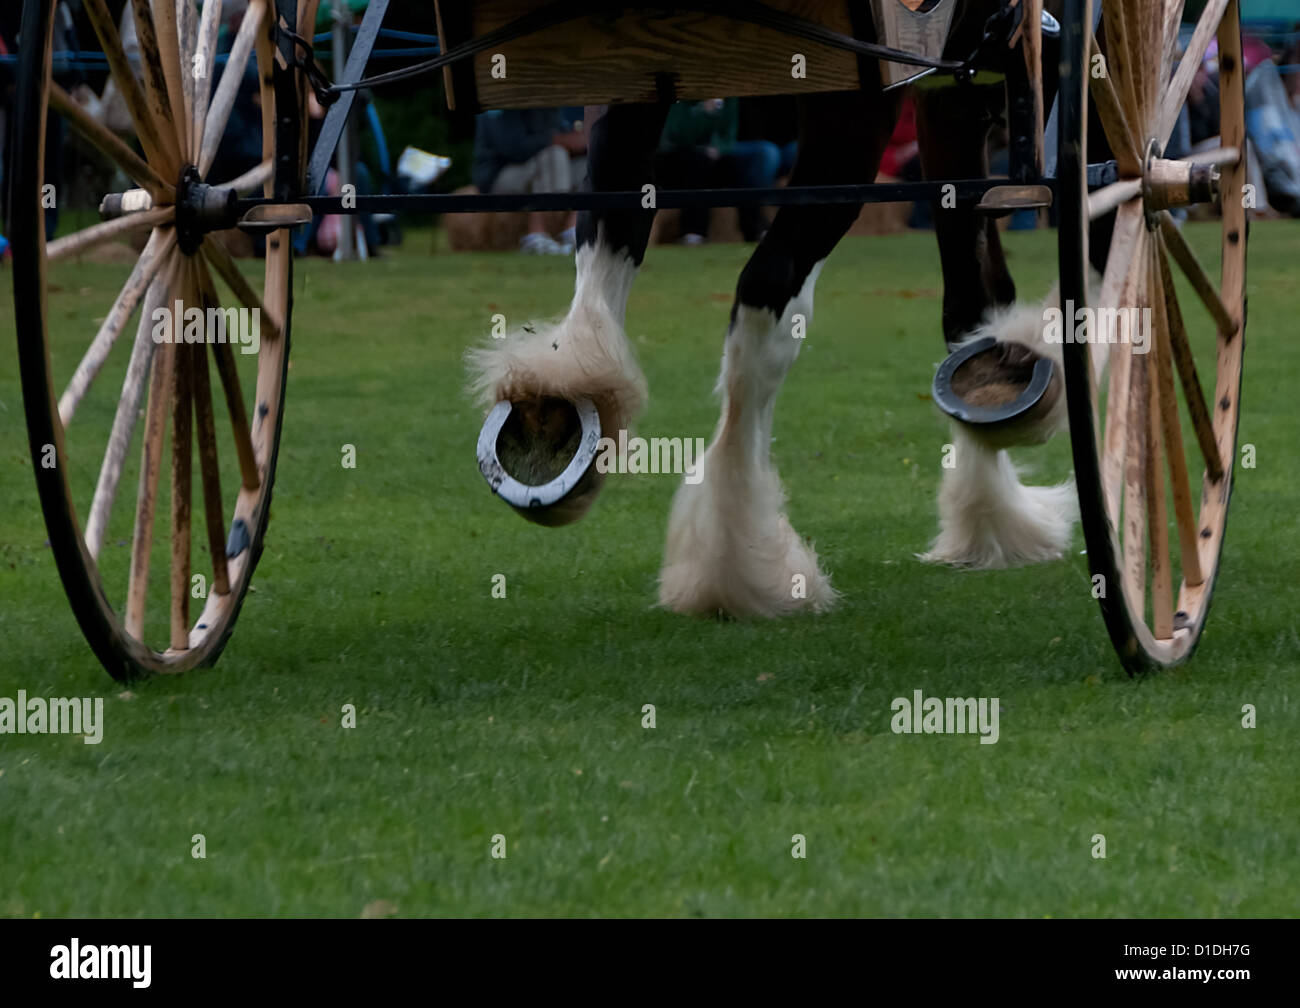 Hooves of a horse pulling a trap - Stock Image